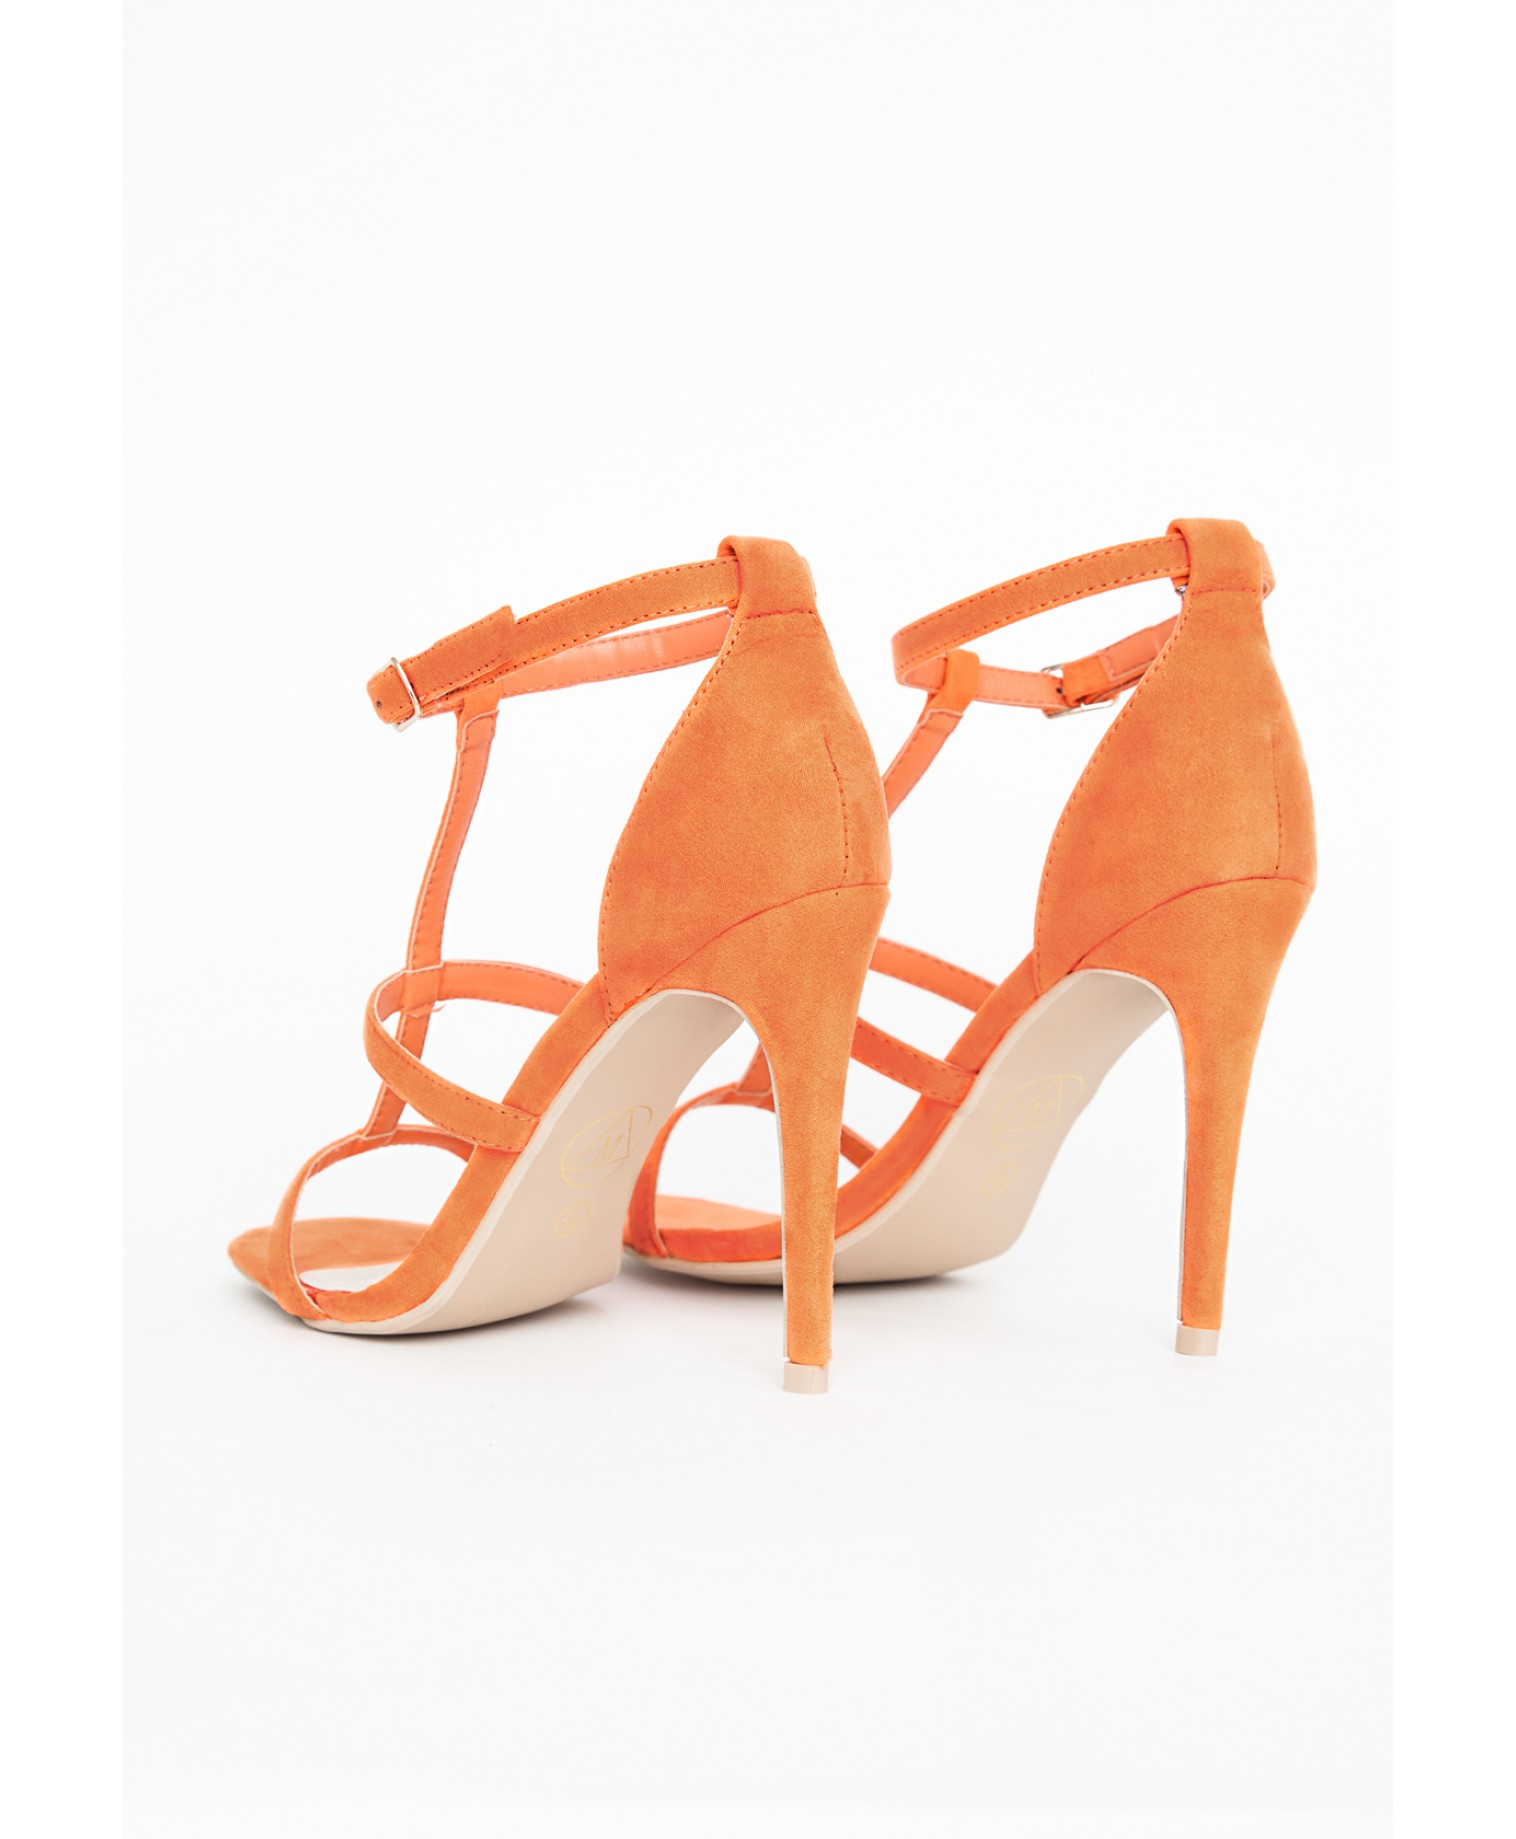 Gemma caged heel sandals in orange 2